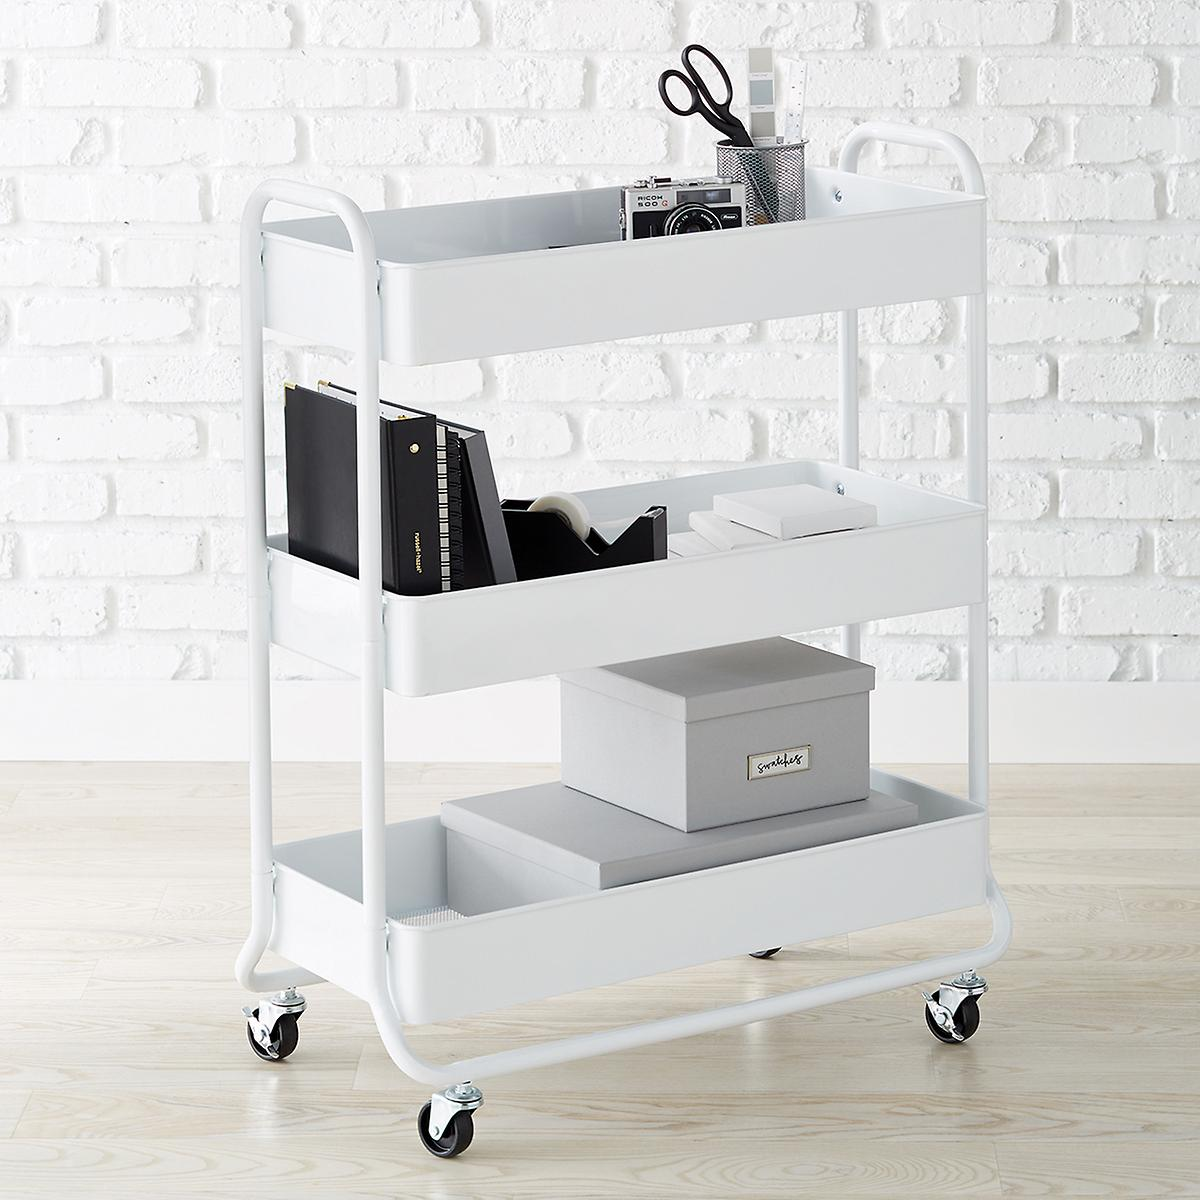 Large White 3 Tier Rolling Cart